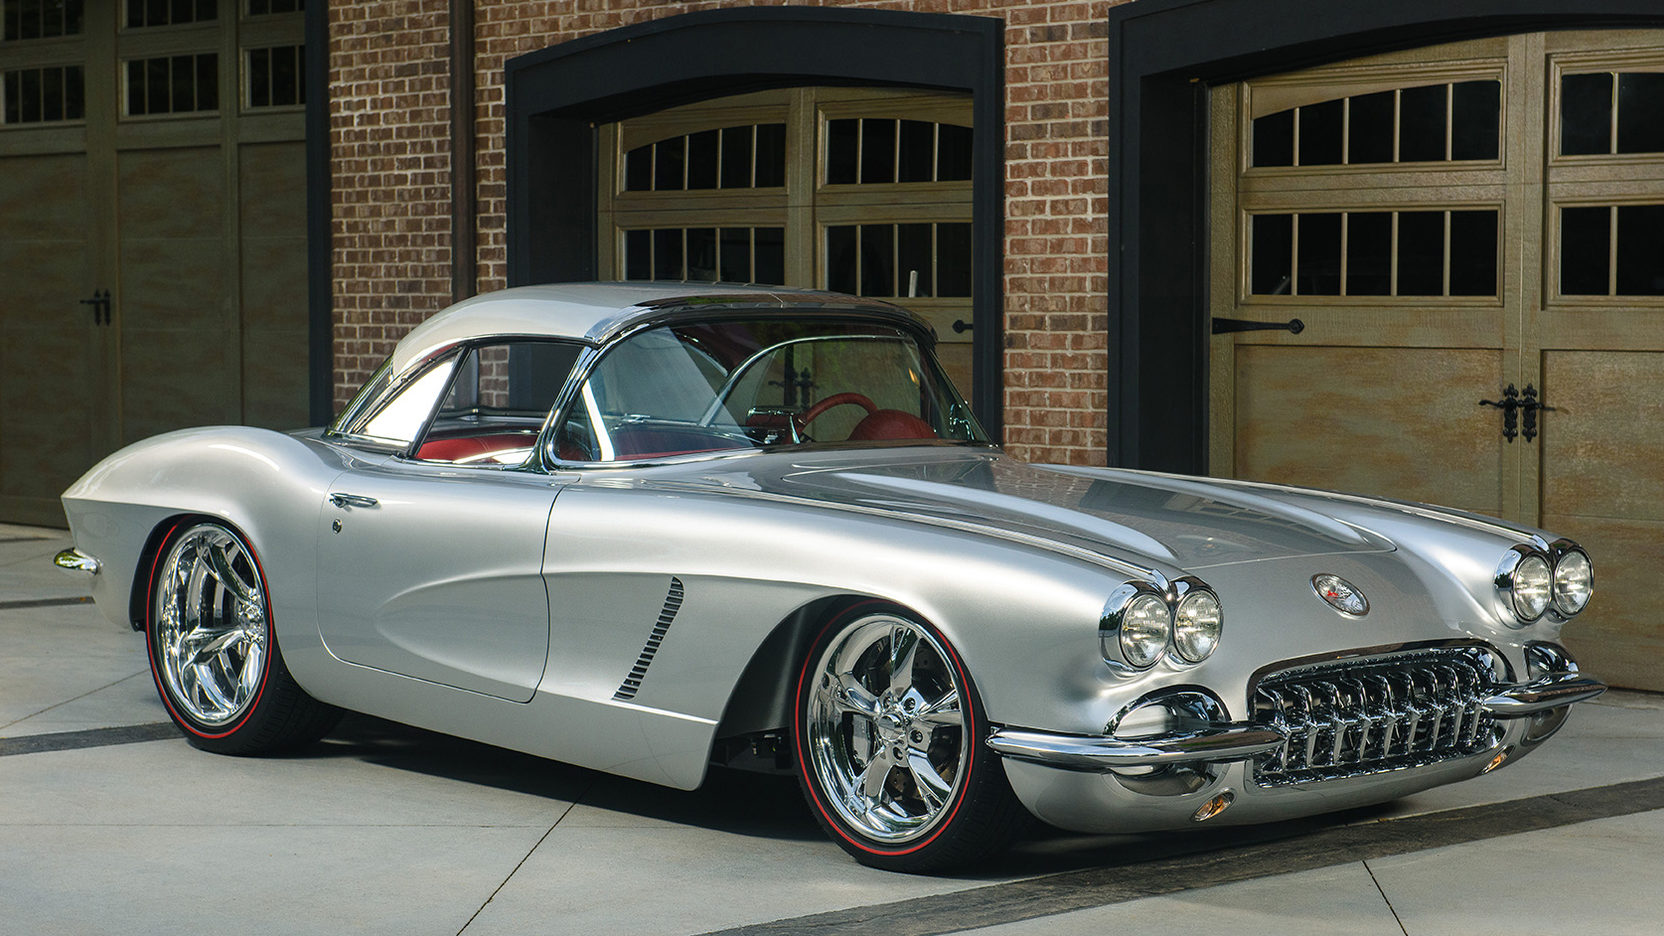 Monster Trucks For Sale >> Jaw Dropper of the Week: 1962 Chevrolet Corvette LS3/500